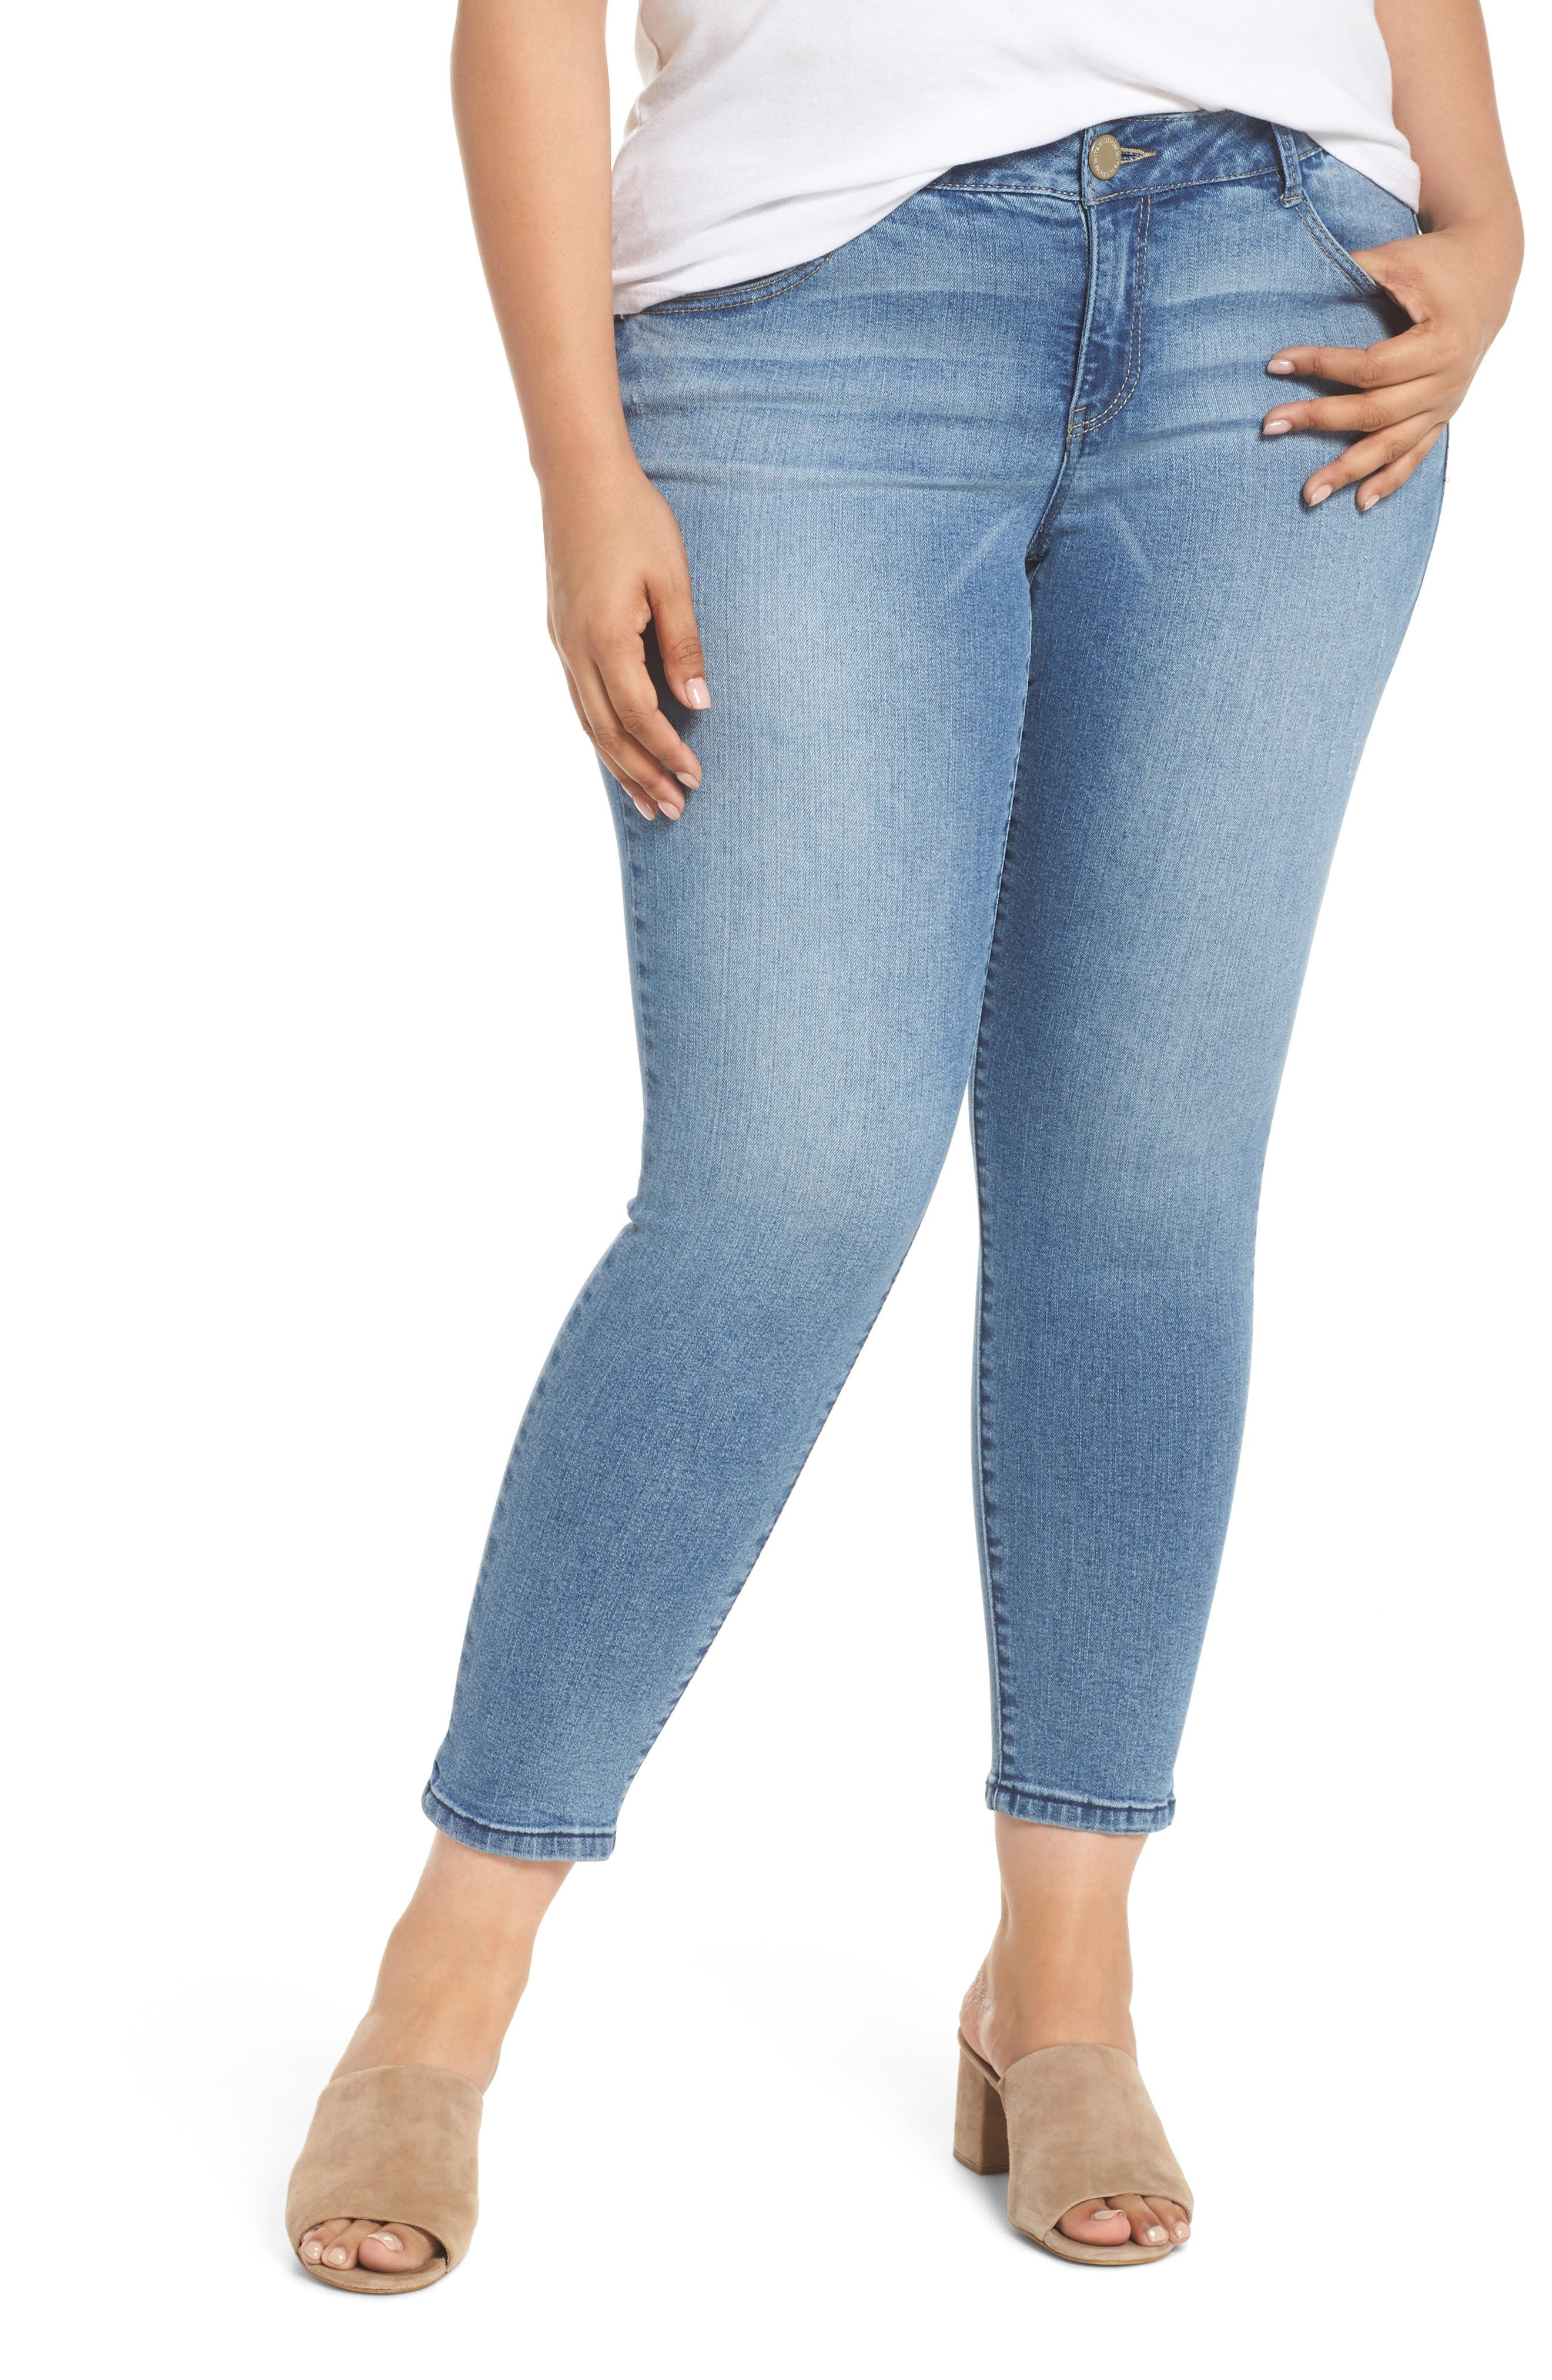 Ab-solution Stretch Ankle Skimmer Jeans,                             Main thumbnail 1, color,                             Light Blue